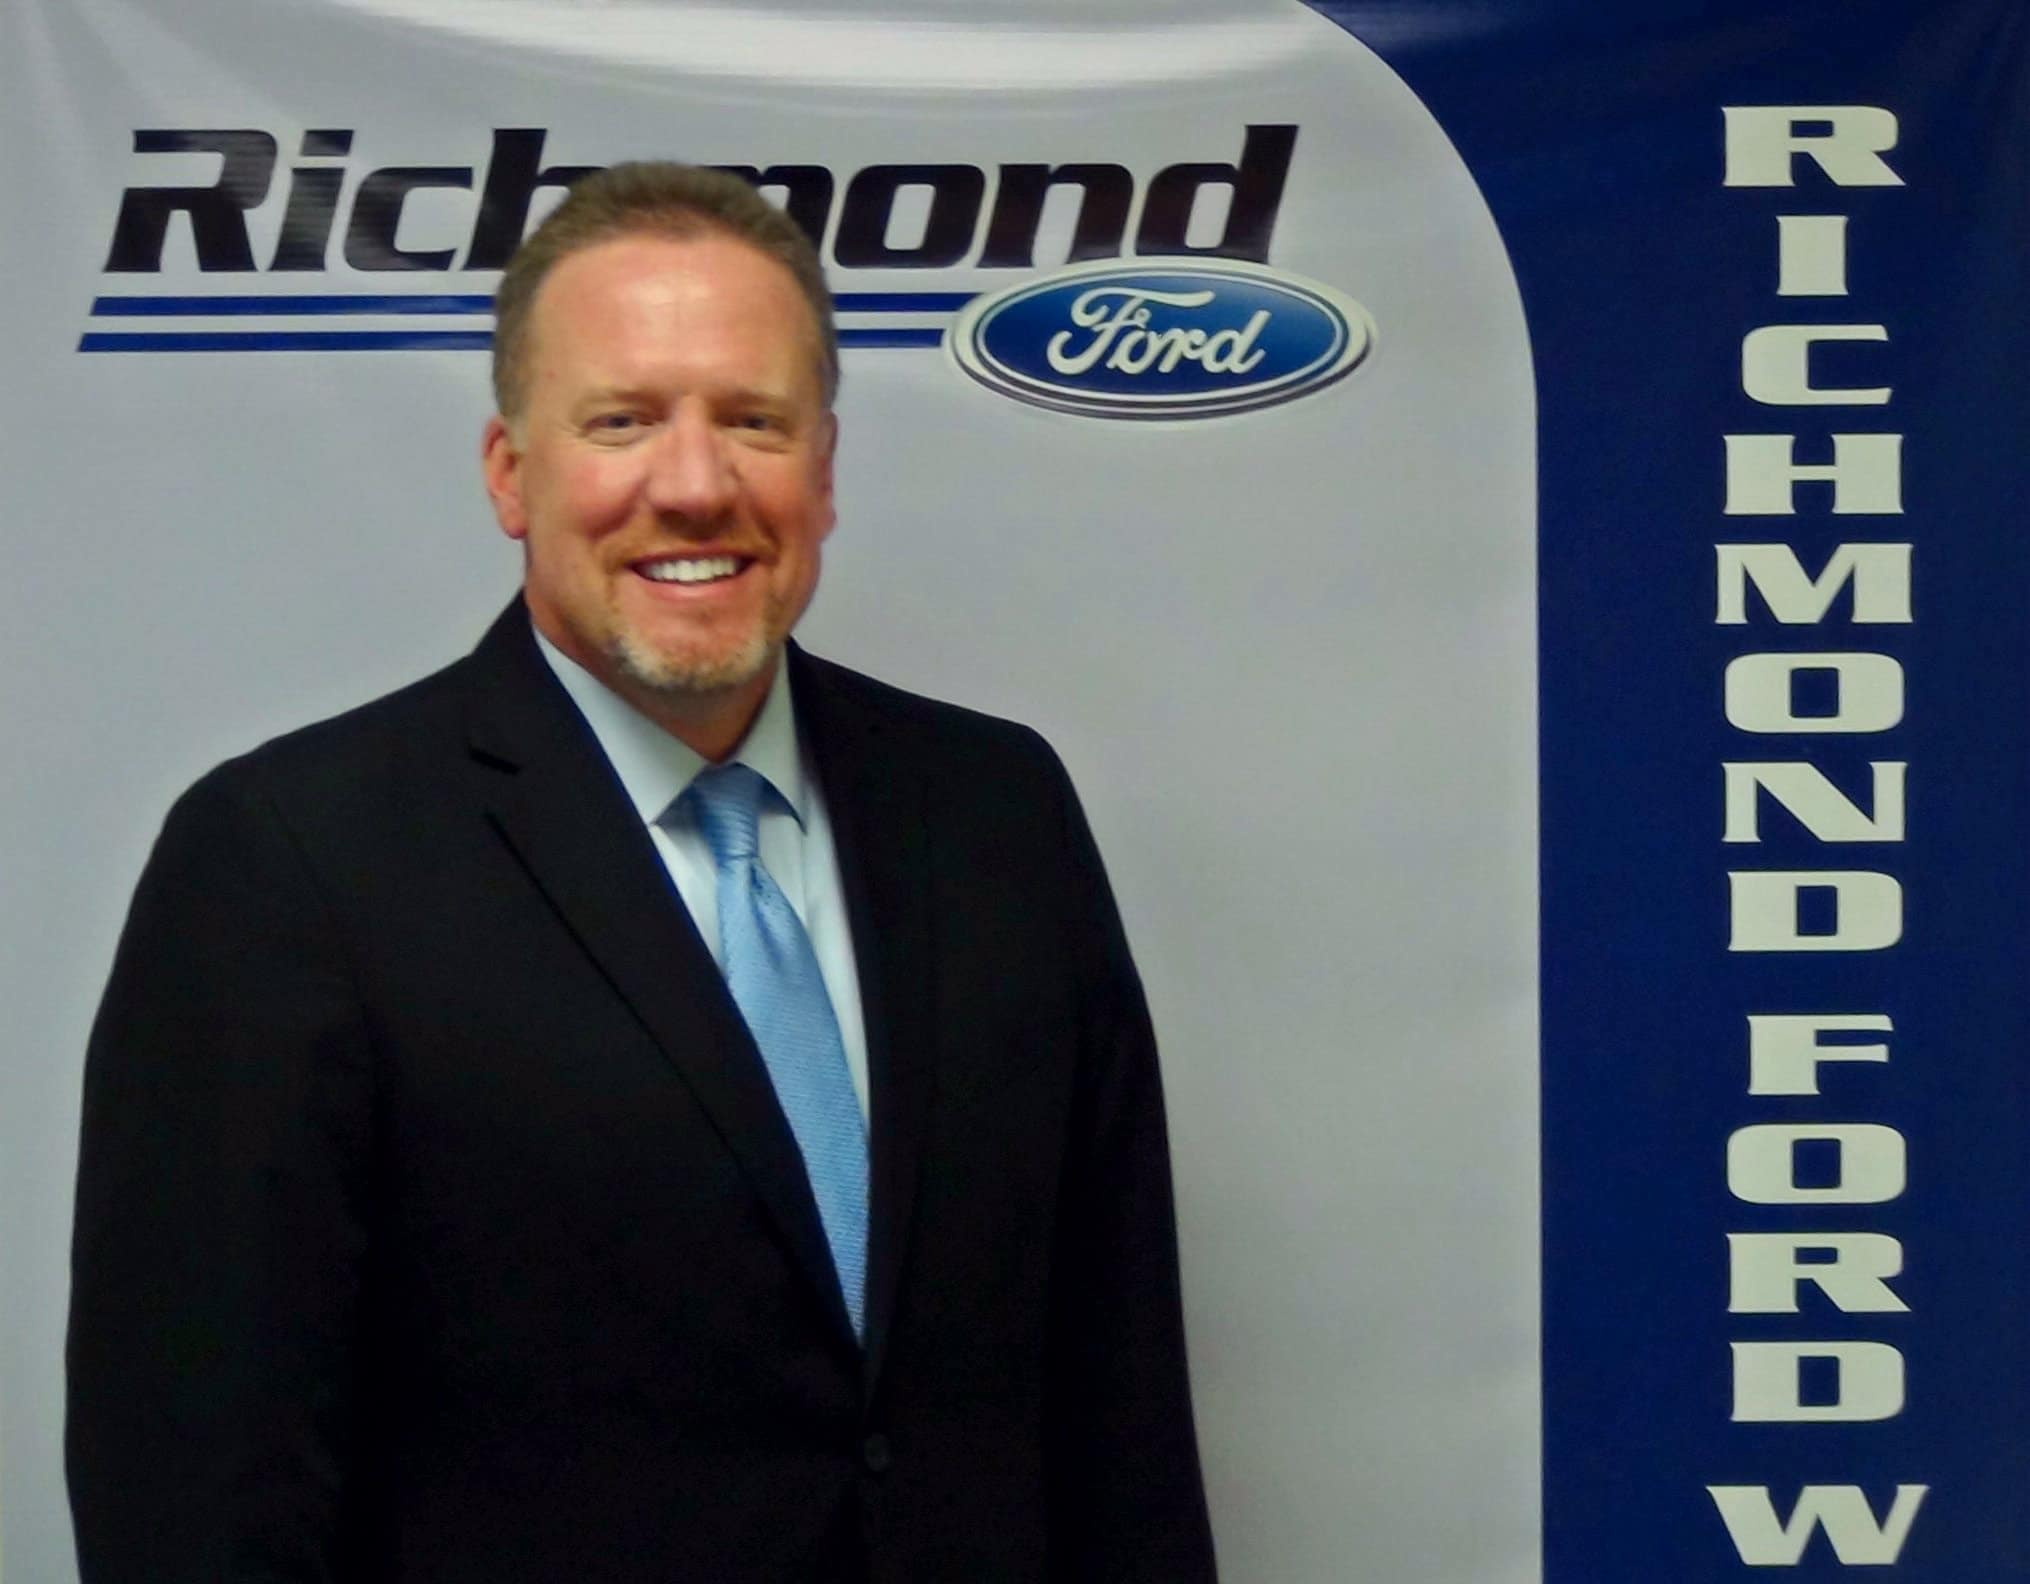 Richmond Ford Lincoln >> Richmond Ford West Welcomes Mark Sands As New General